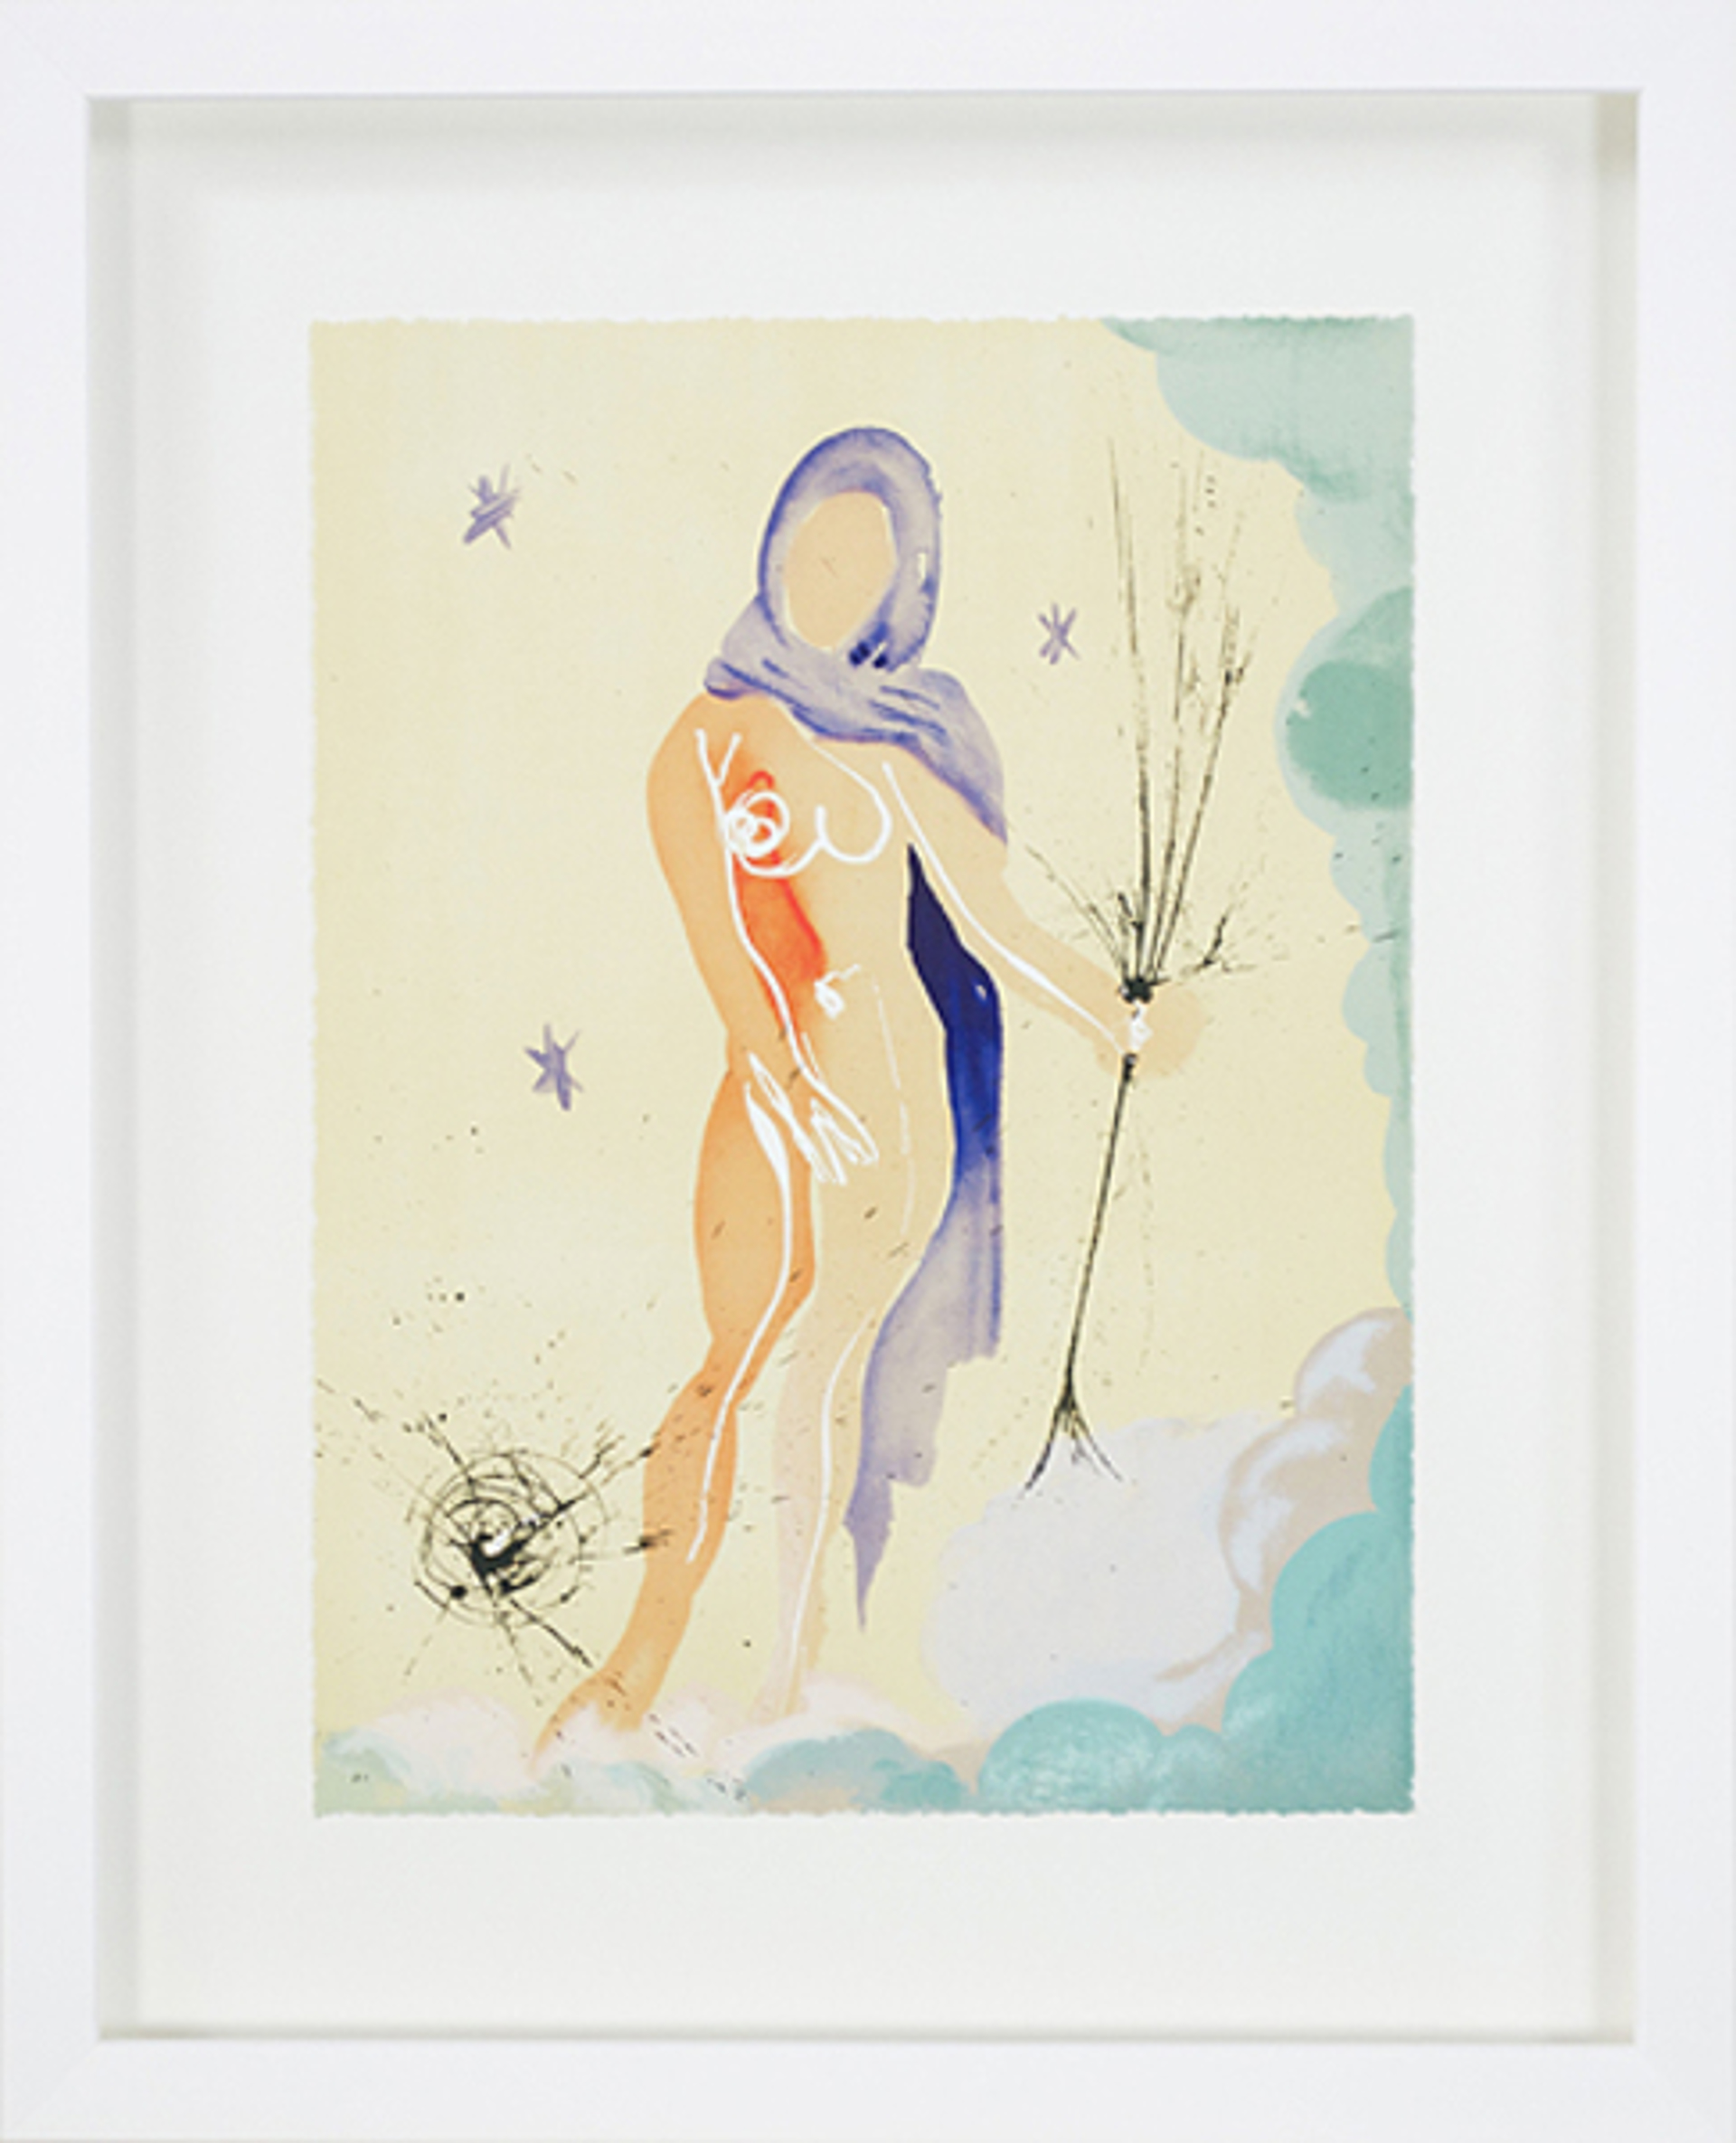 Virgo From Signs of the Zodiac Series by Salvador Dali